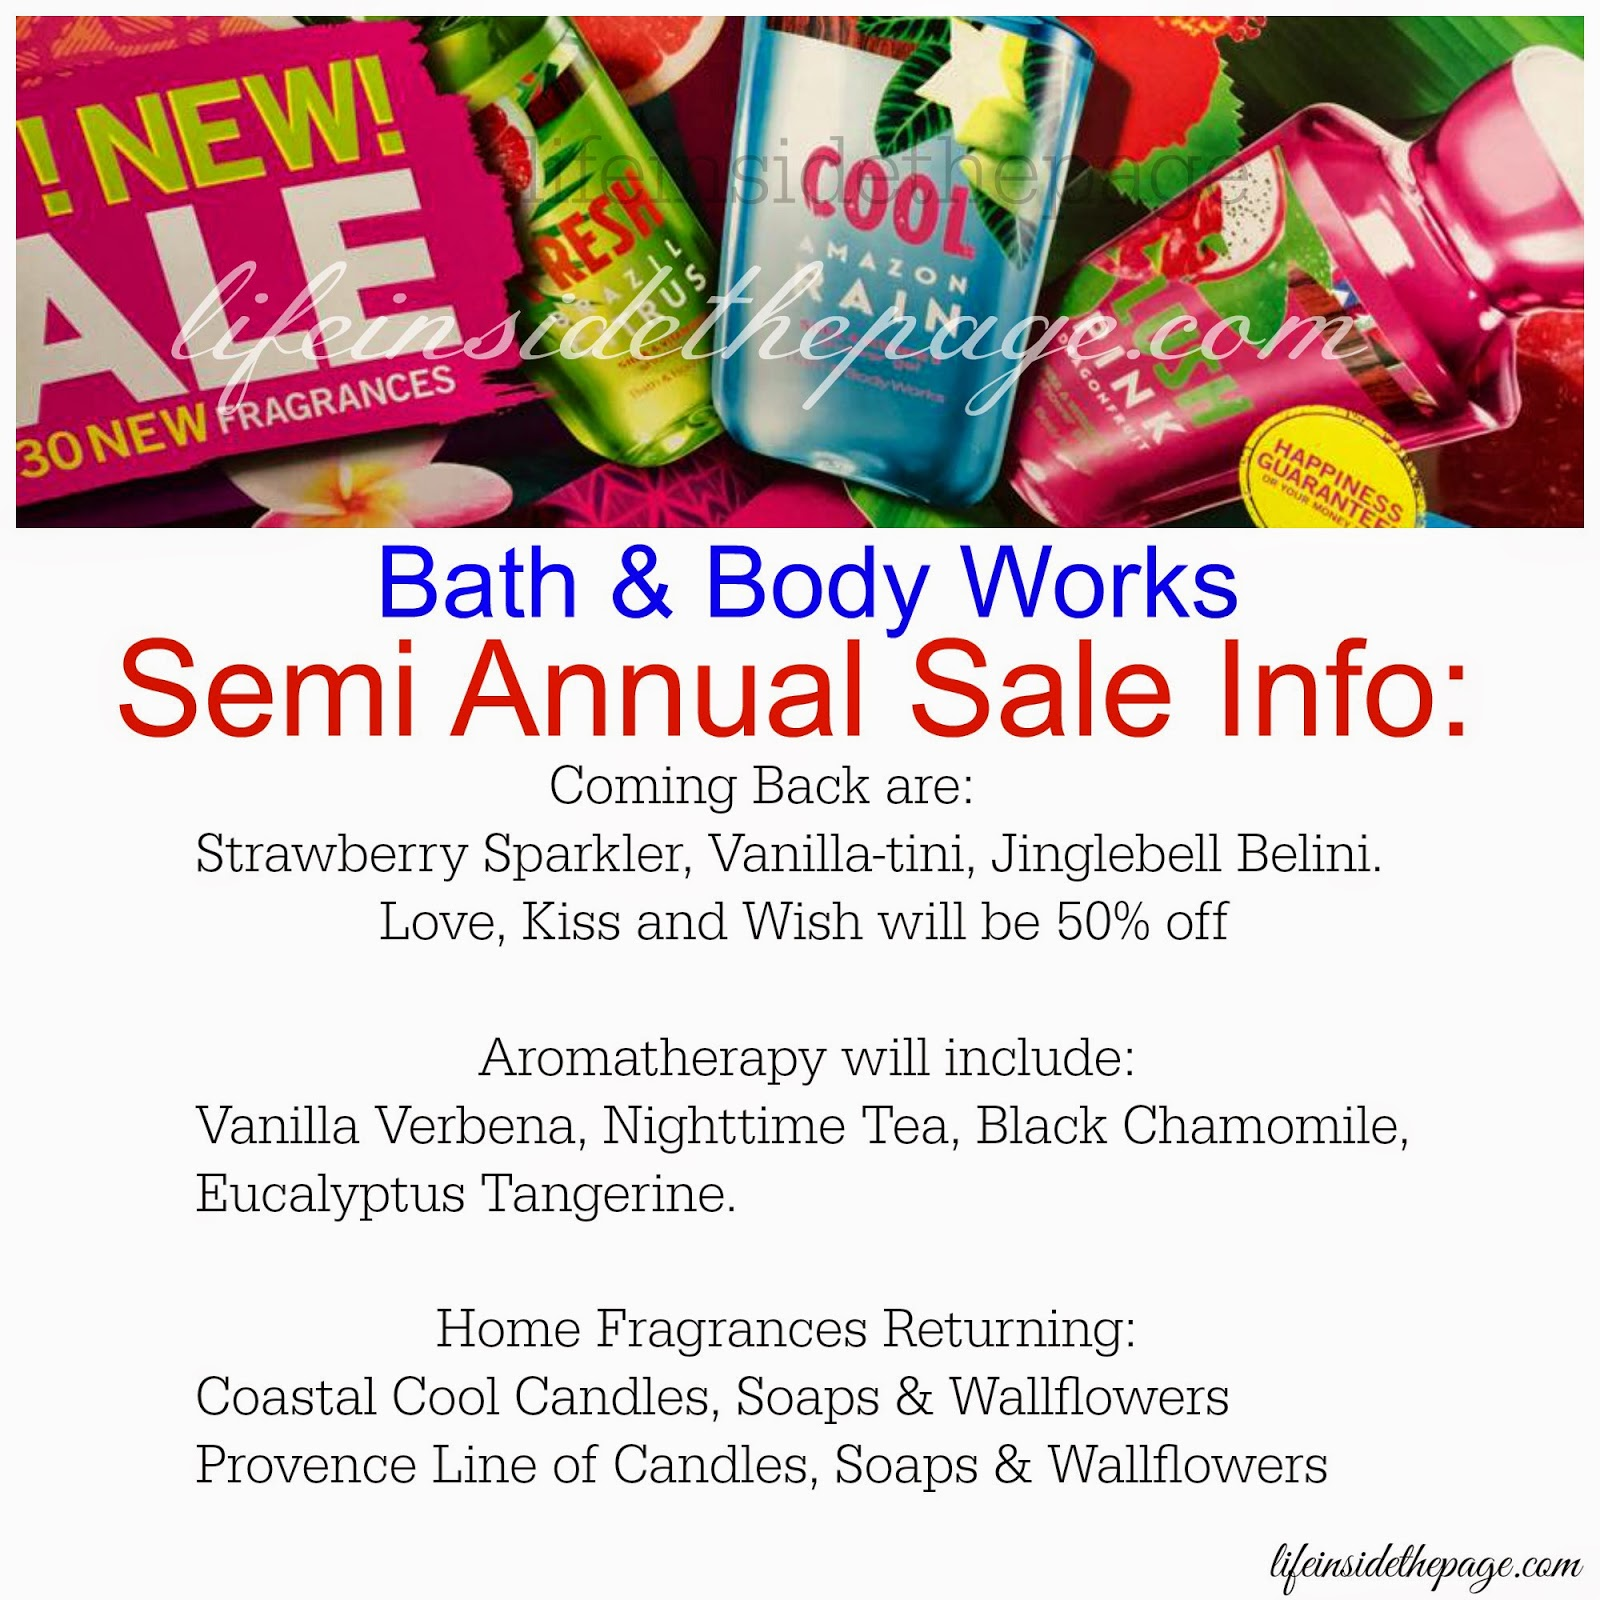 The Bath and Body Works Black Friday ad is a favorite among fragrance lovers. Although the retailer's Semi Annual sale in January tends to be amazing, the store offers some incredible deals that you can use food holiday gifts for friends and loved ones. You can even pick up some new scents for yourself and your home to get ready for the holidays/5().